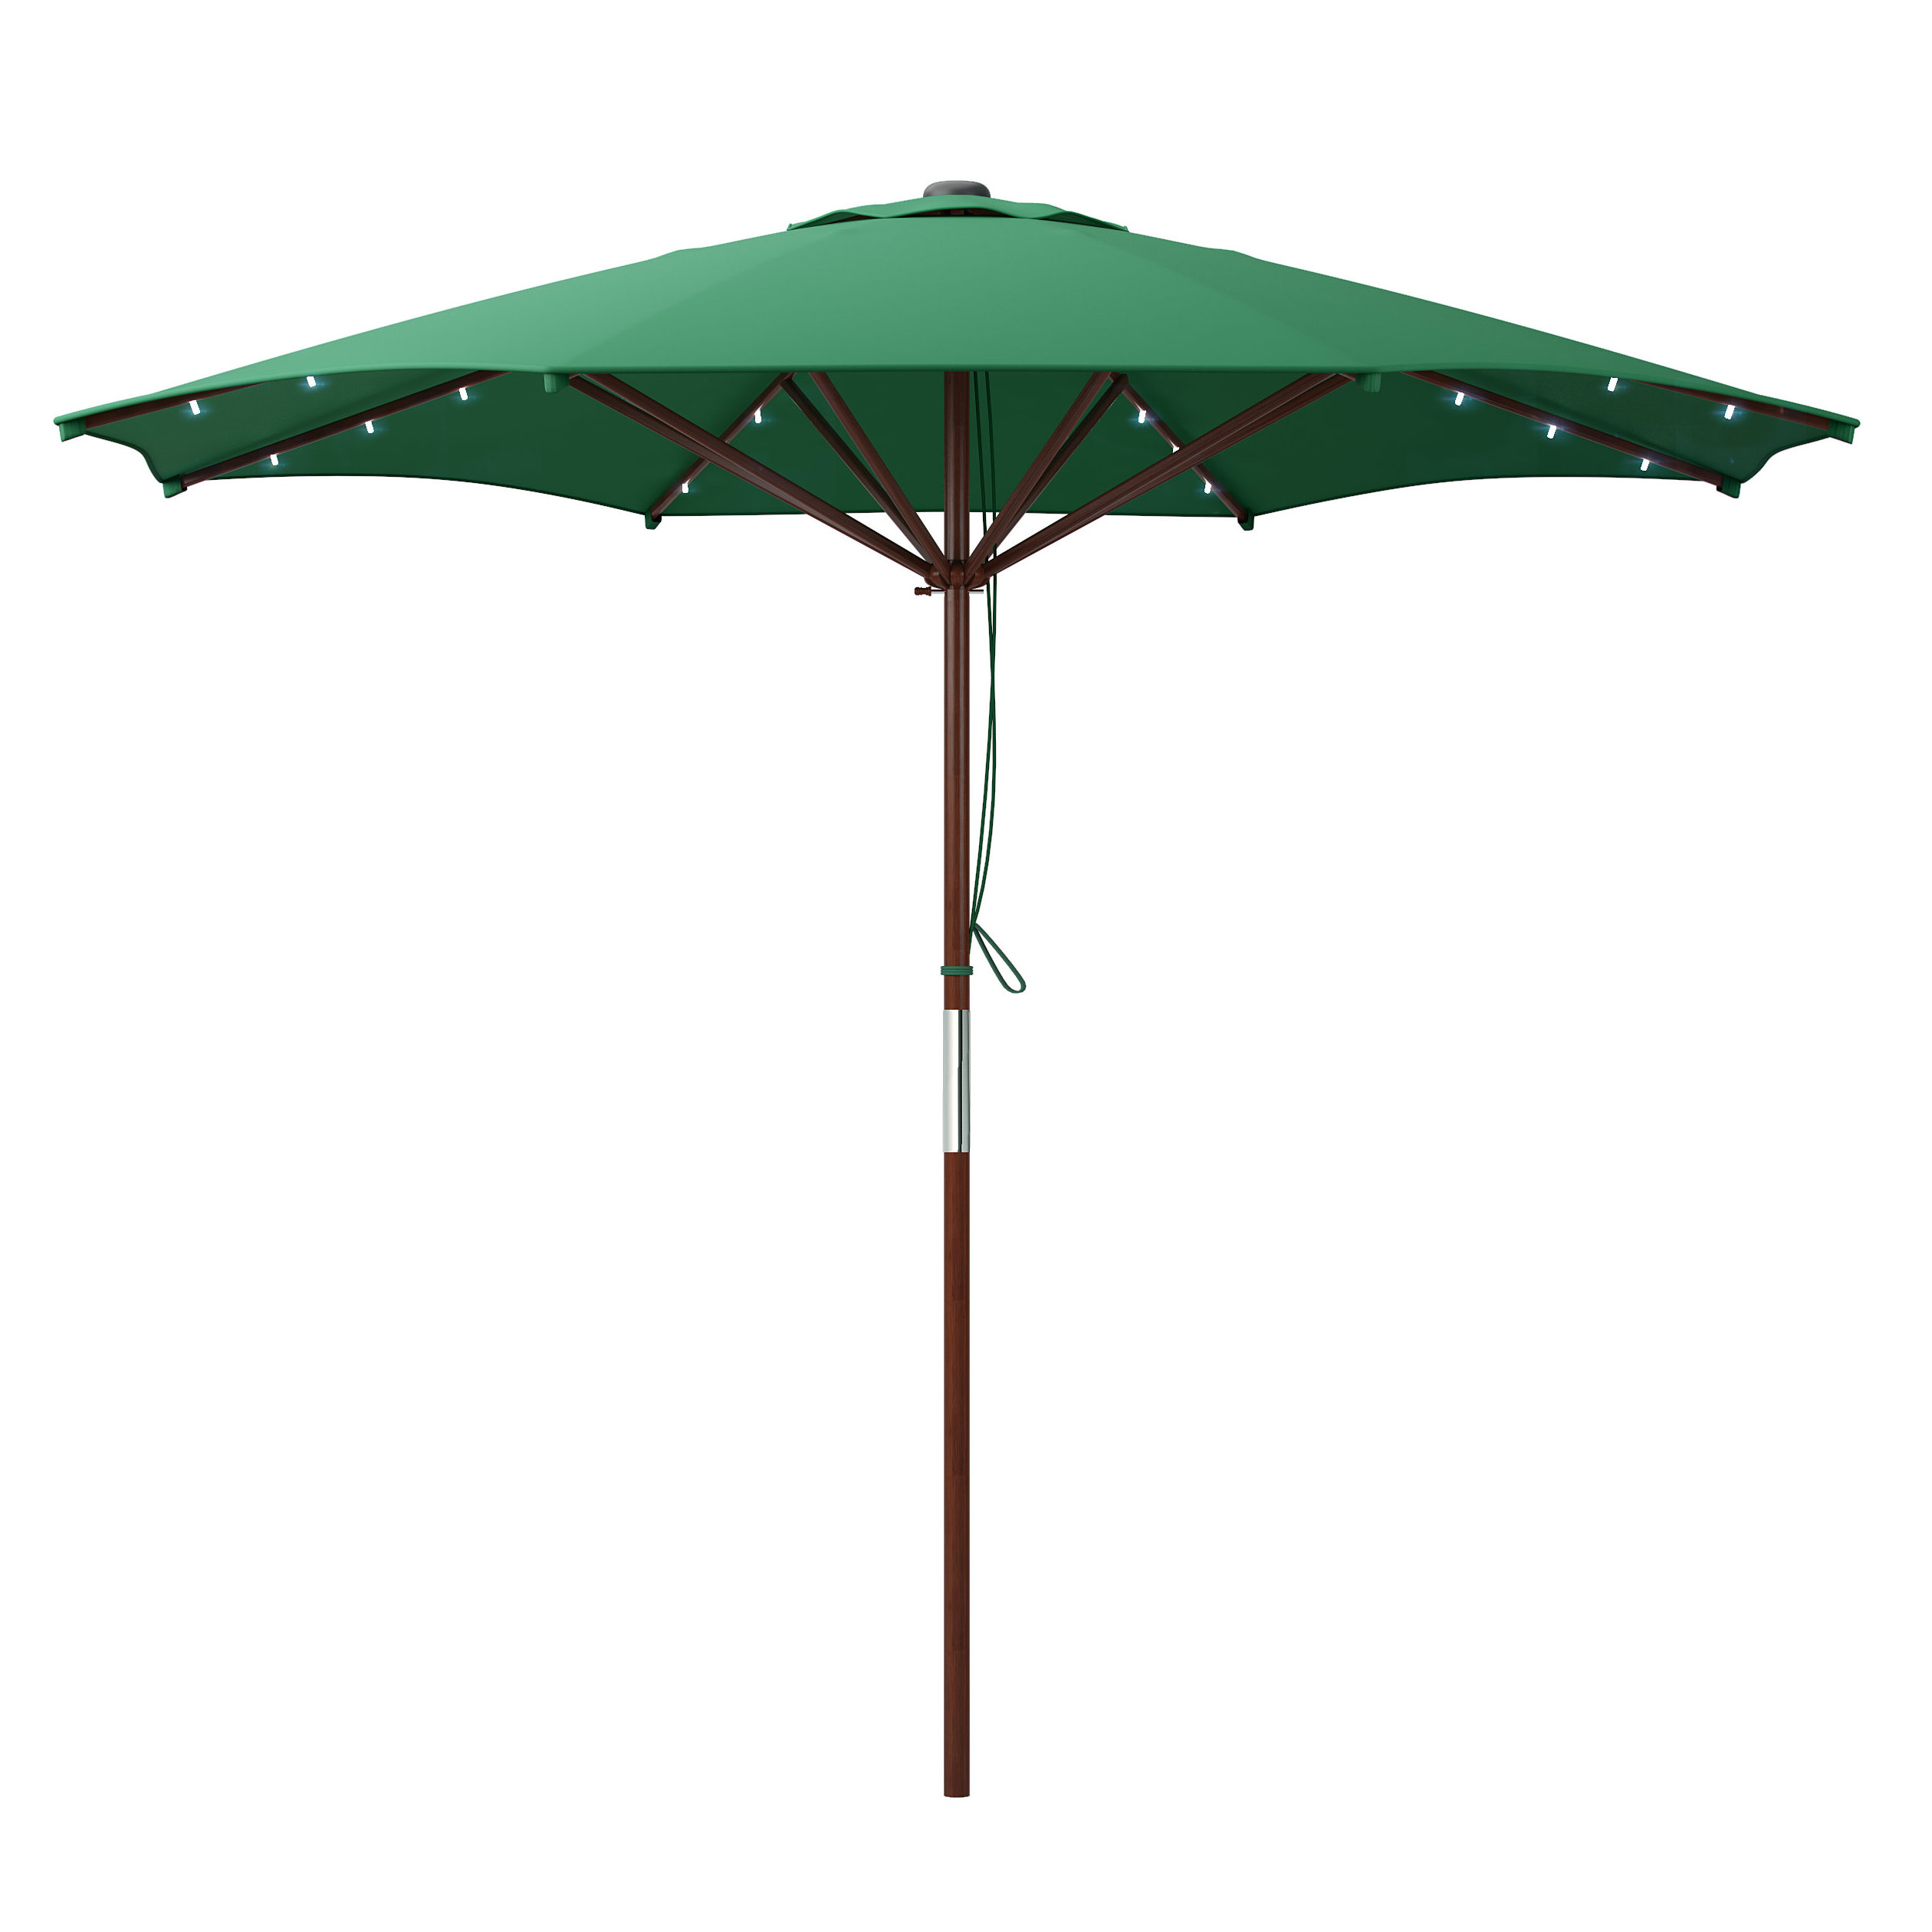 Deforge 9' Illuminated Umbrella Throughout Most Current Winchester Zipcode Design Market Umbrellas (View 14 of 20)